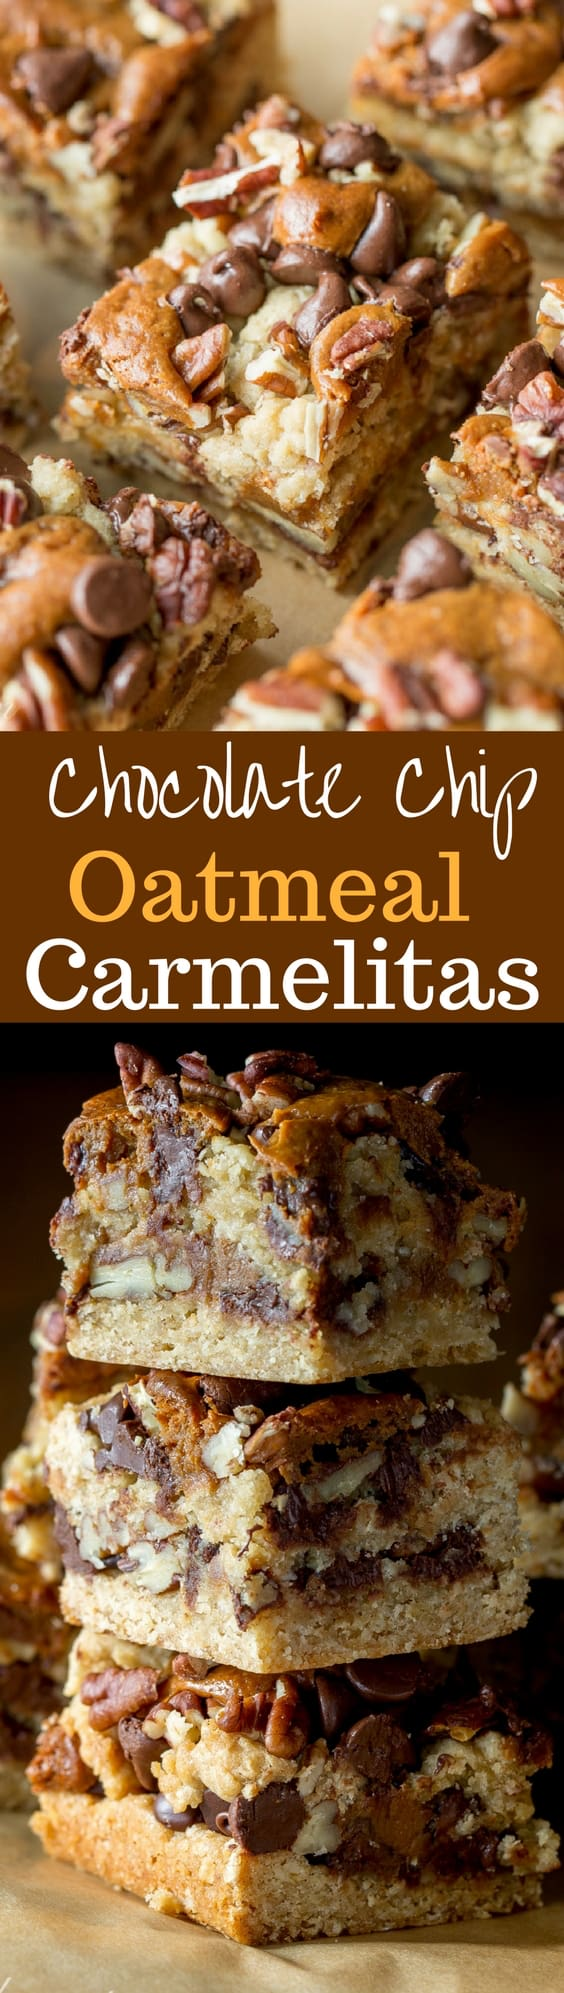 Chocolate Chip Oatmeal Carmelitas - loads of pecans, chocolate chips ...